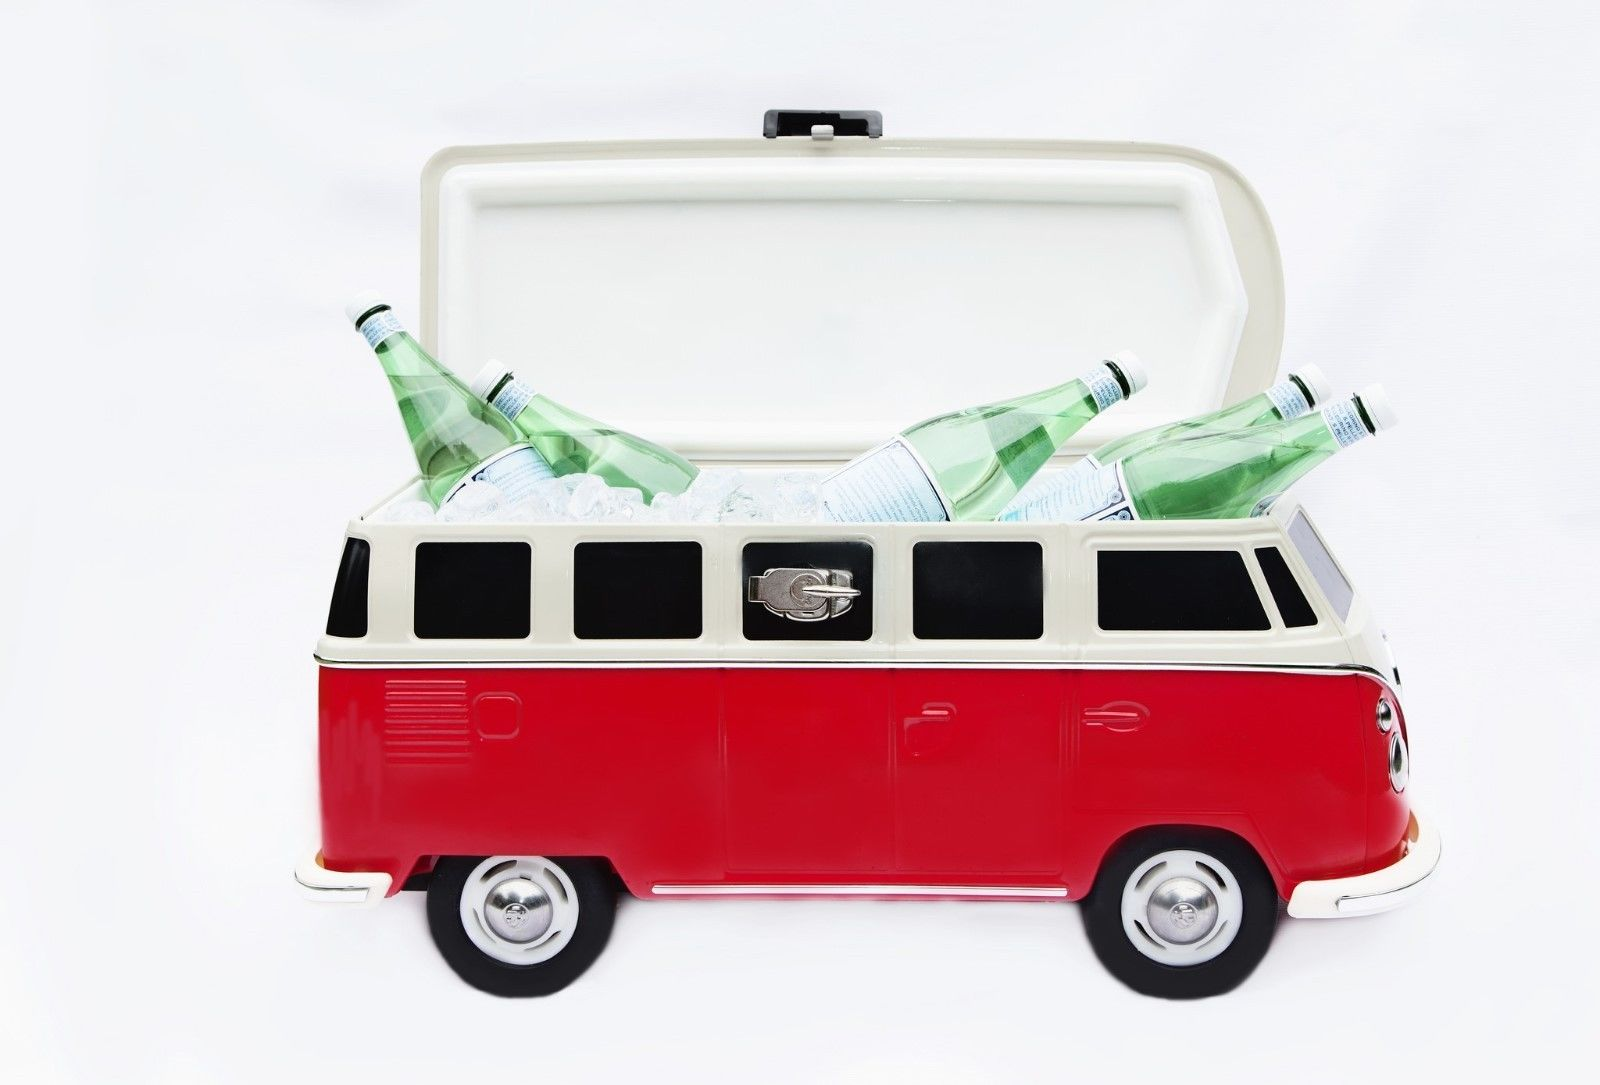 55e190e4c46 The Monster Factory VW Camper Van Cool Box Cooler Stainless Steel Rolling  Ice chest Indoor & Outdoor